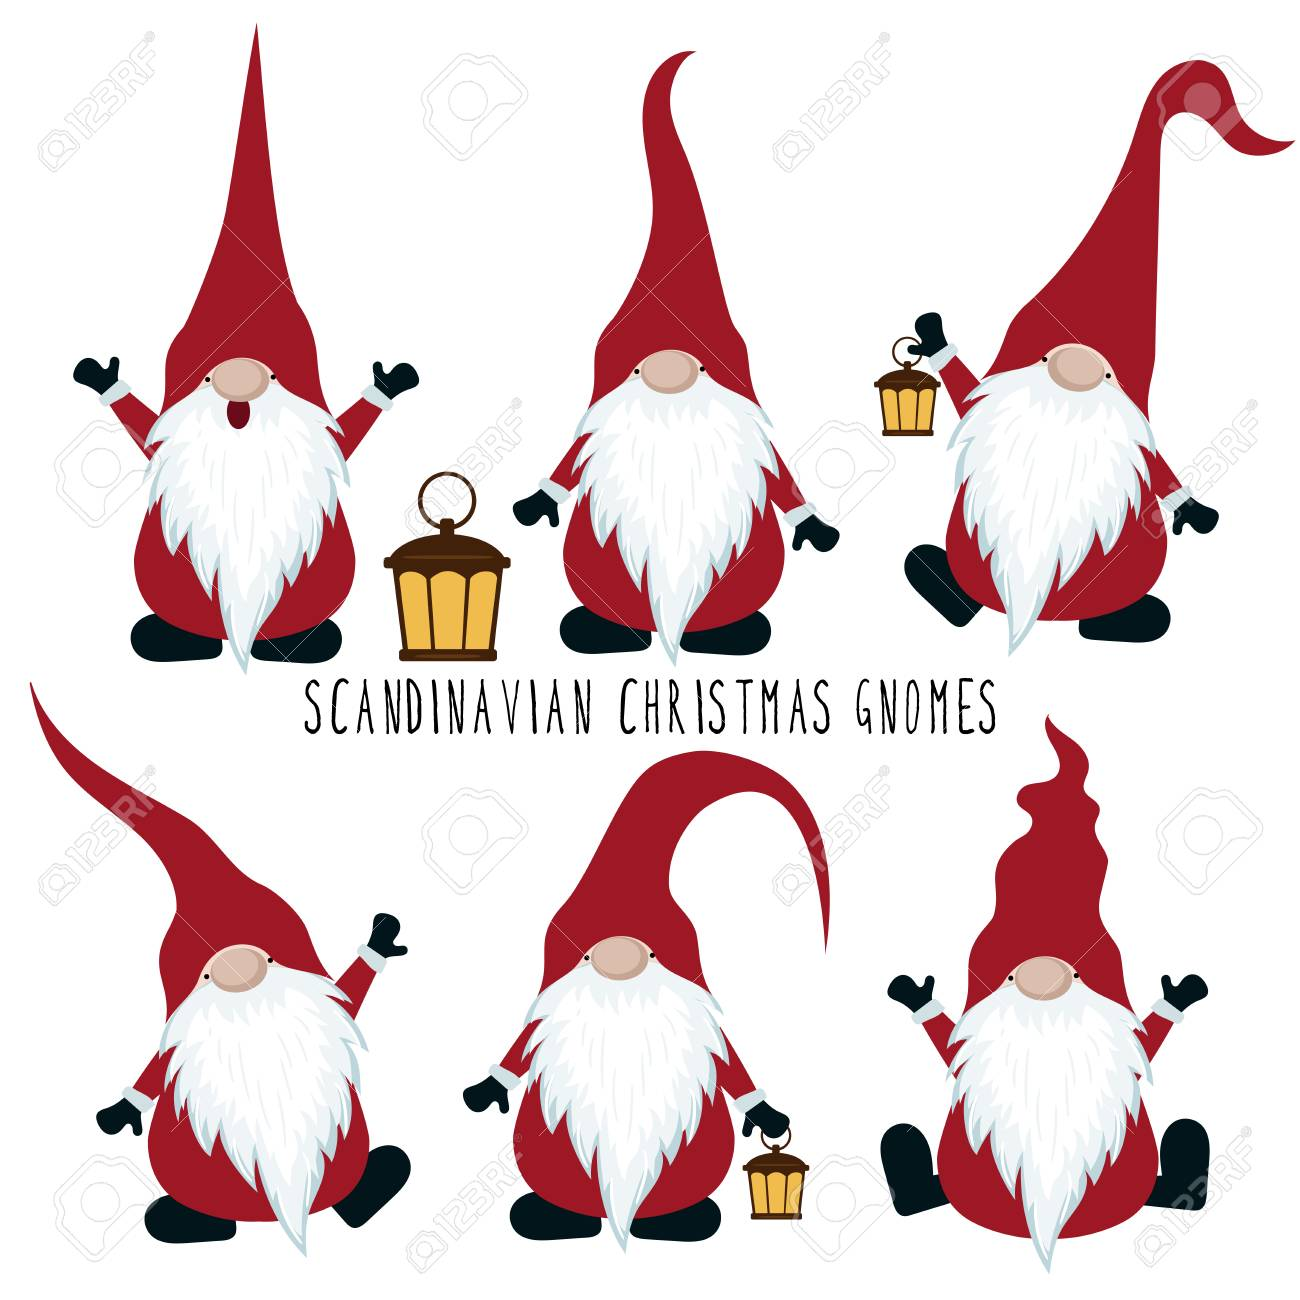 Christmas Gnomes Clipart.Christmas Gnomes Collection Isolated On White Background Vector